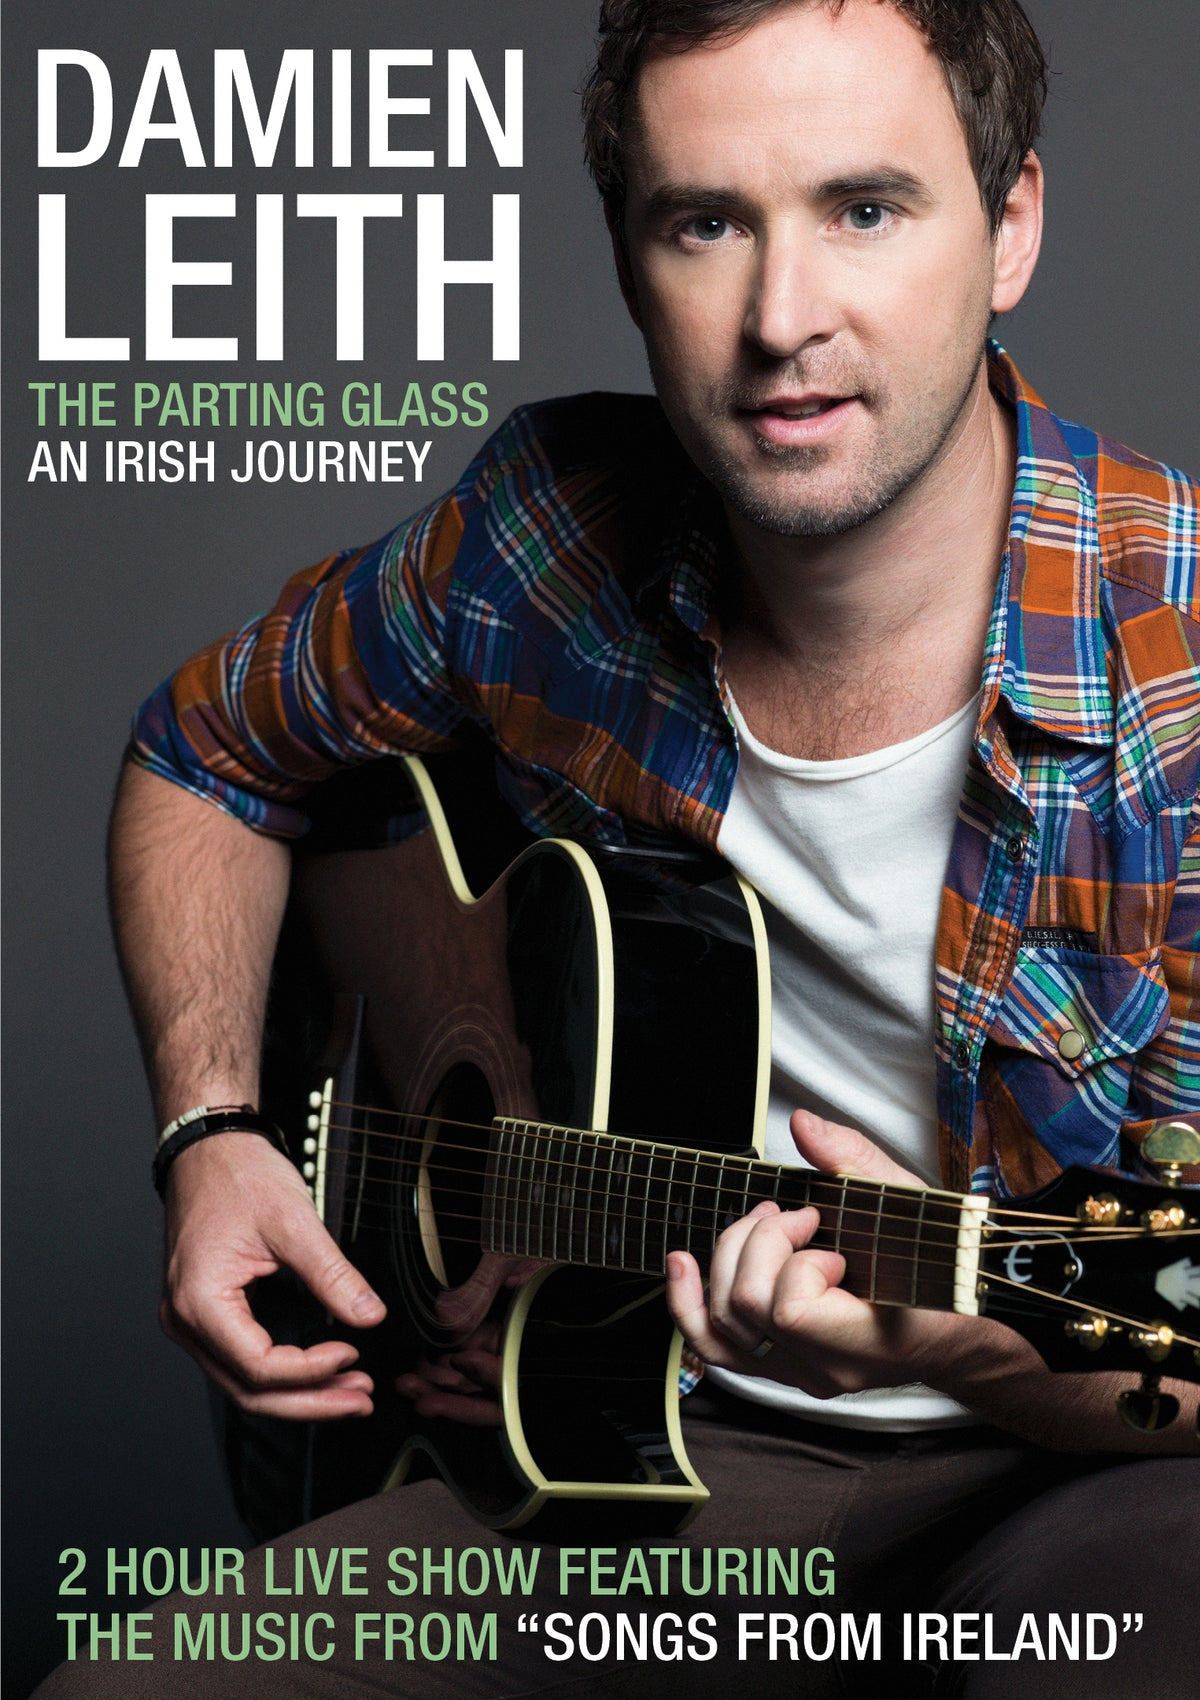 FANFARE293 - DAMIEN LEITH - THE PARTING